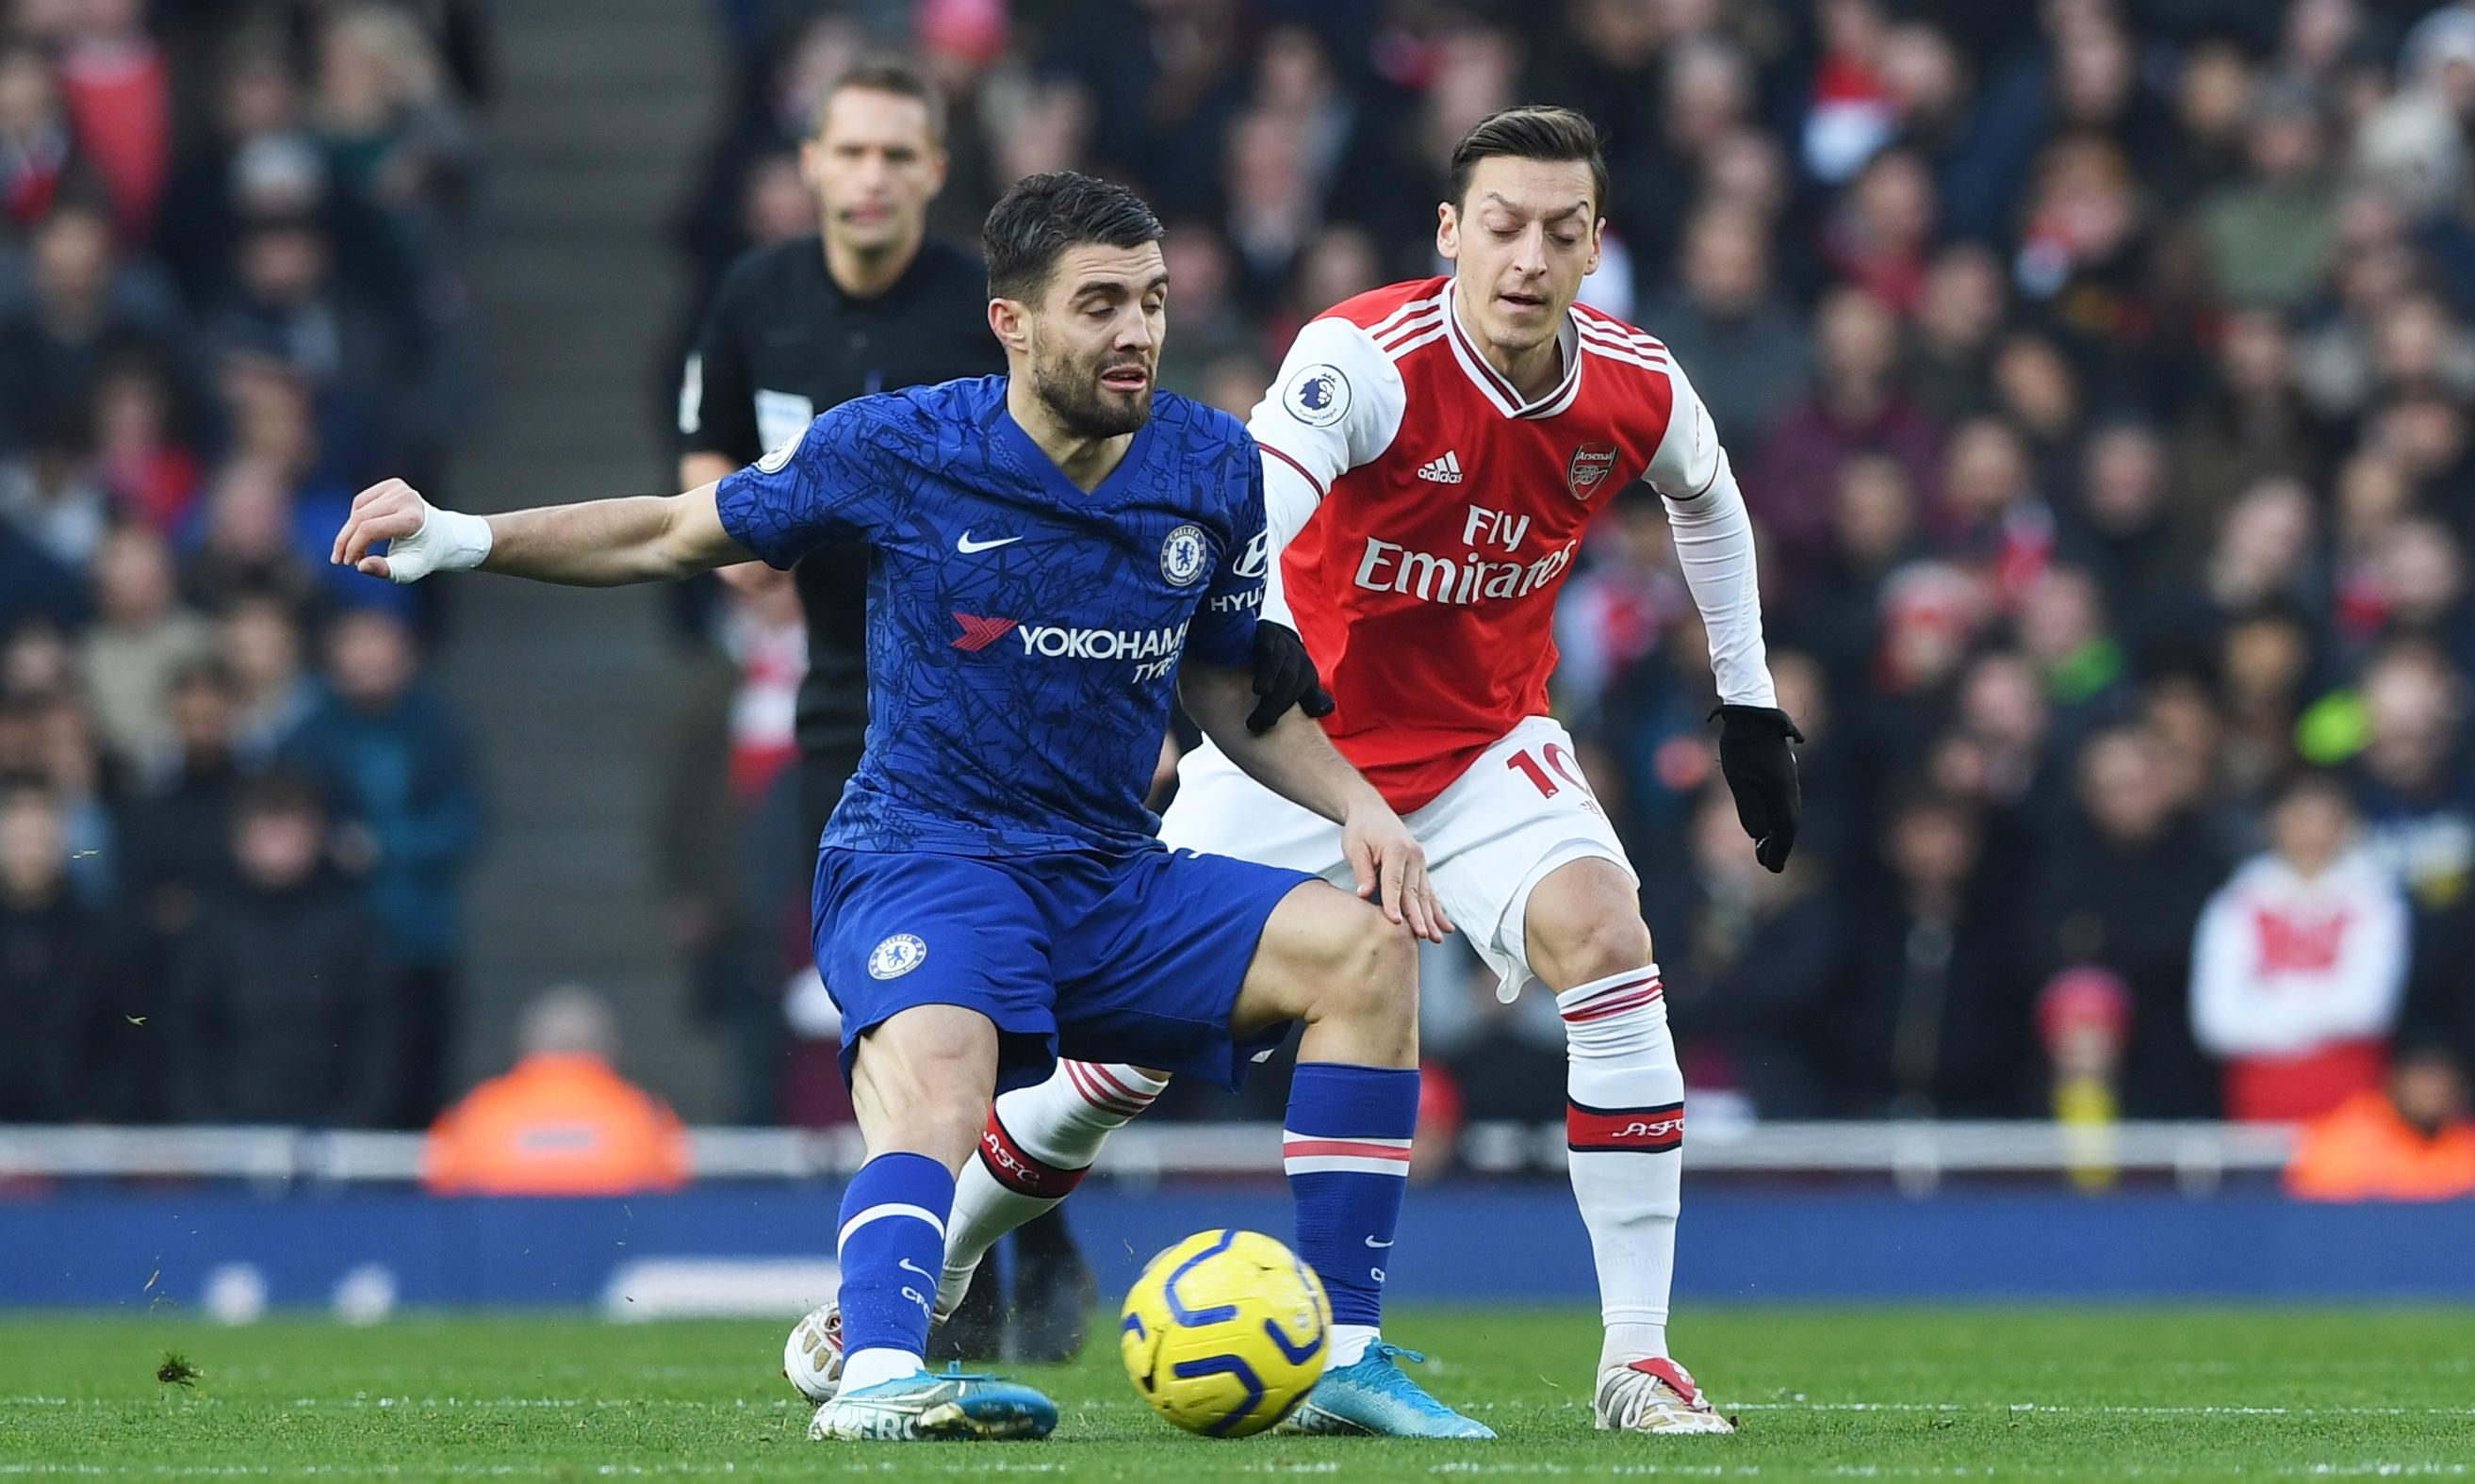 Arsenal 1-2 Chelsea: five talking points from the Emirates